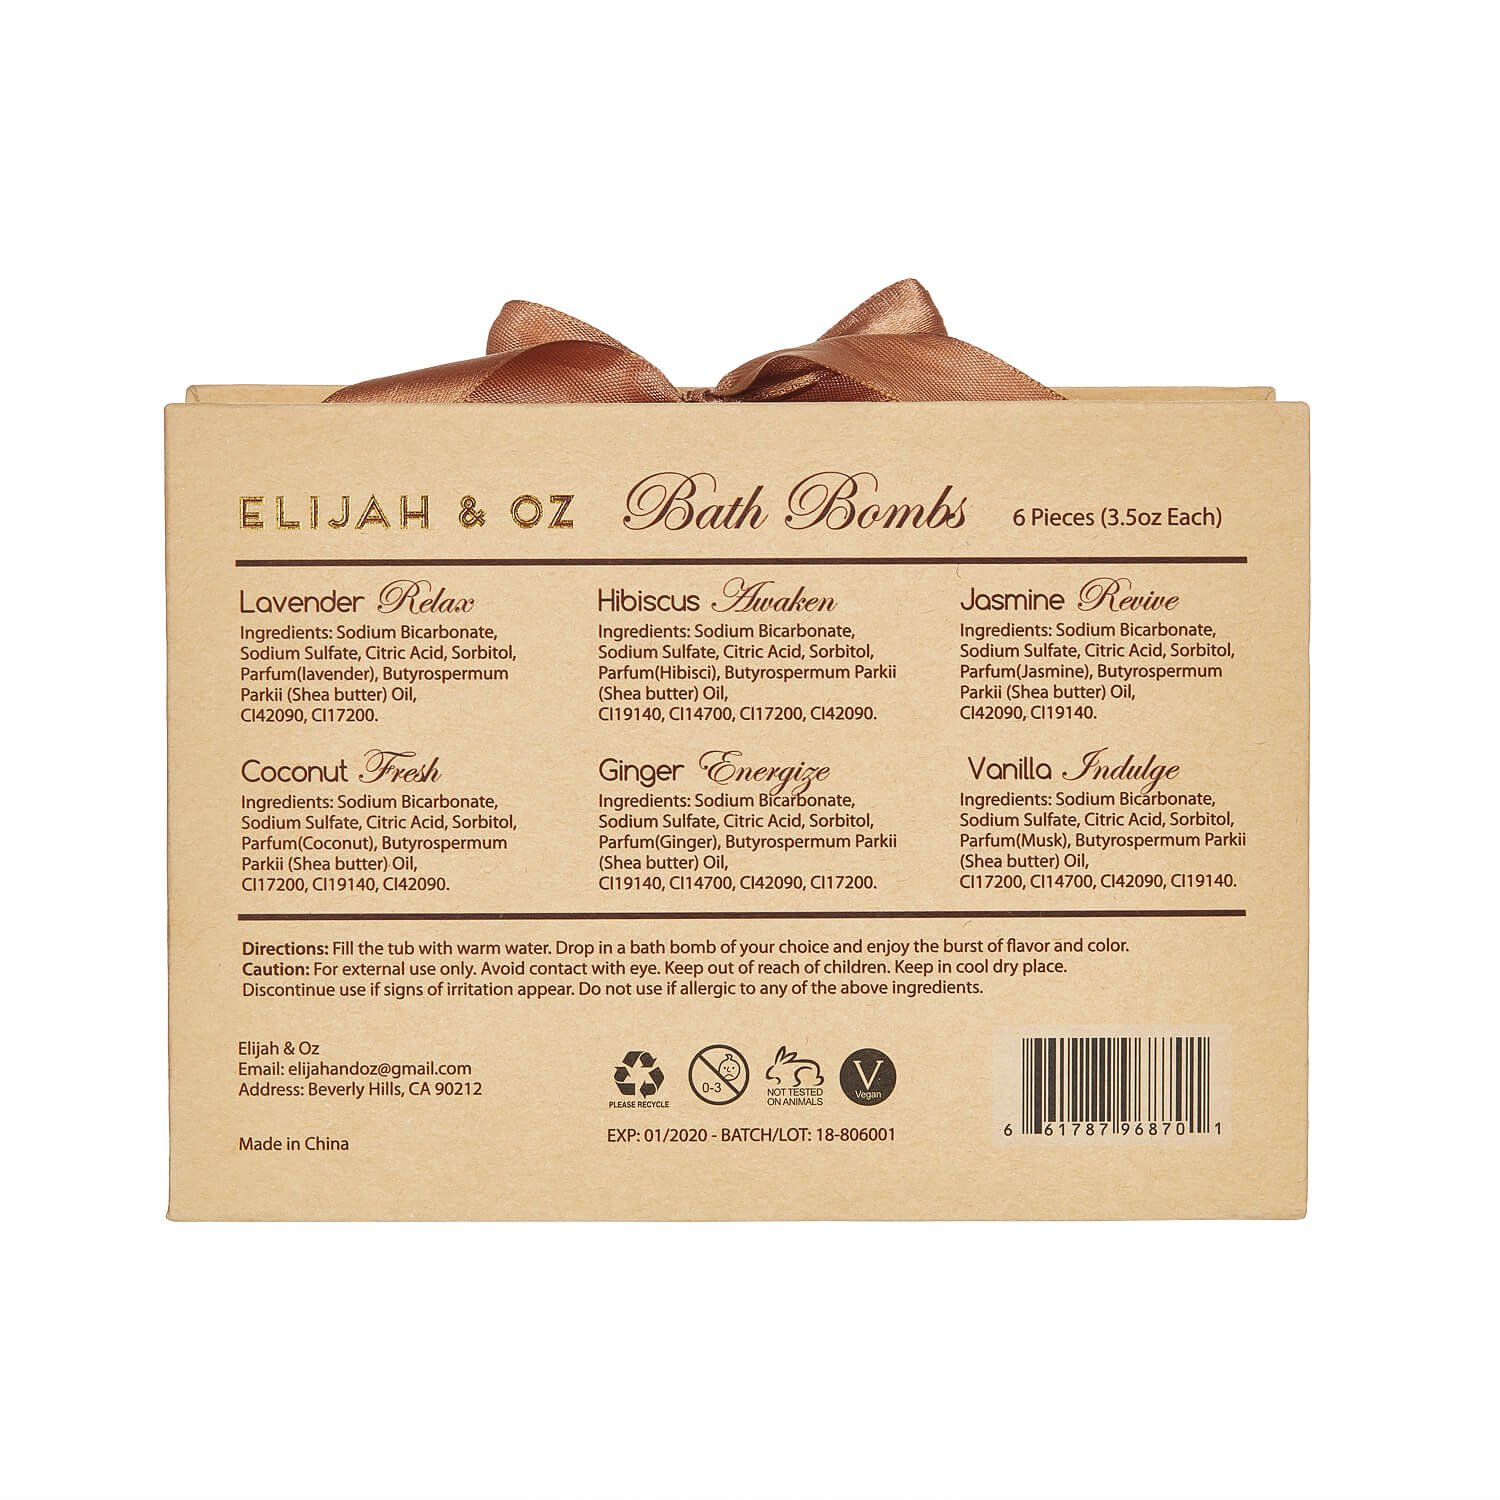 Bath Bombs Gift Set - Handmade Spa Fizzies for Relaxation & Aromatherapy - With Organic, Natural Essential Oils and Shea Butter - Vegan & Cruelty-Free (Set of 6)- By Elijah & Oz by Elijah & Oz (Image #7)